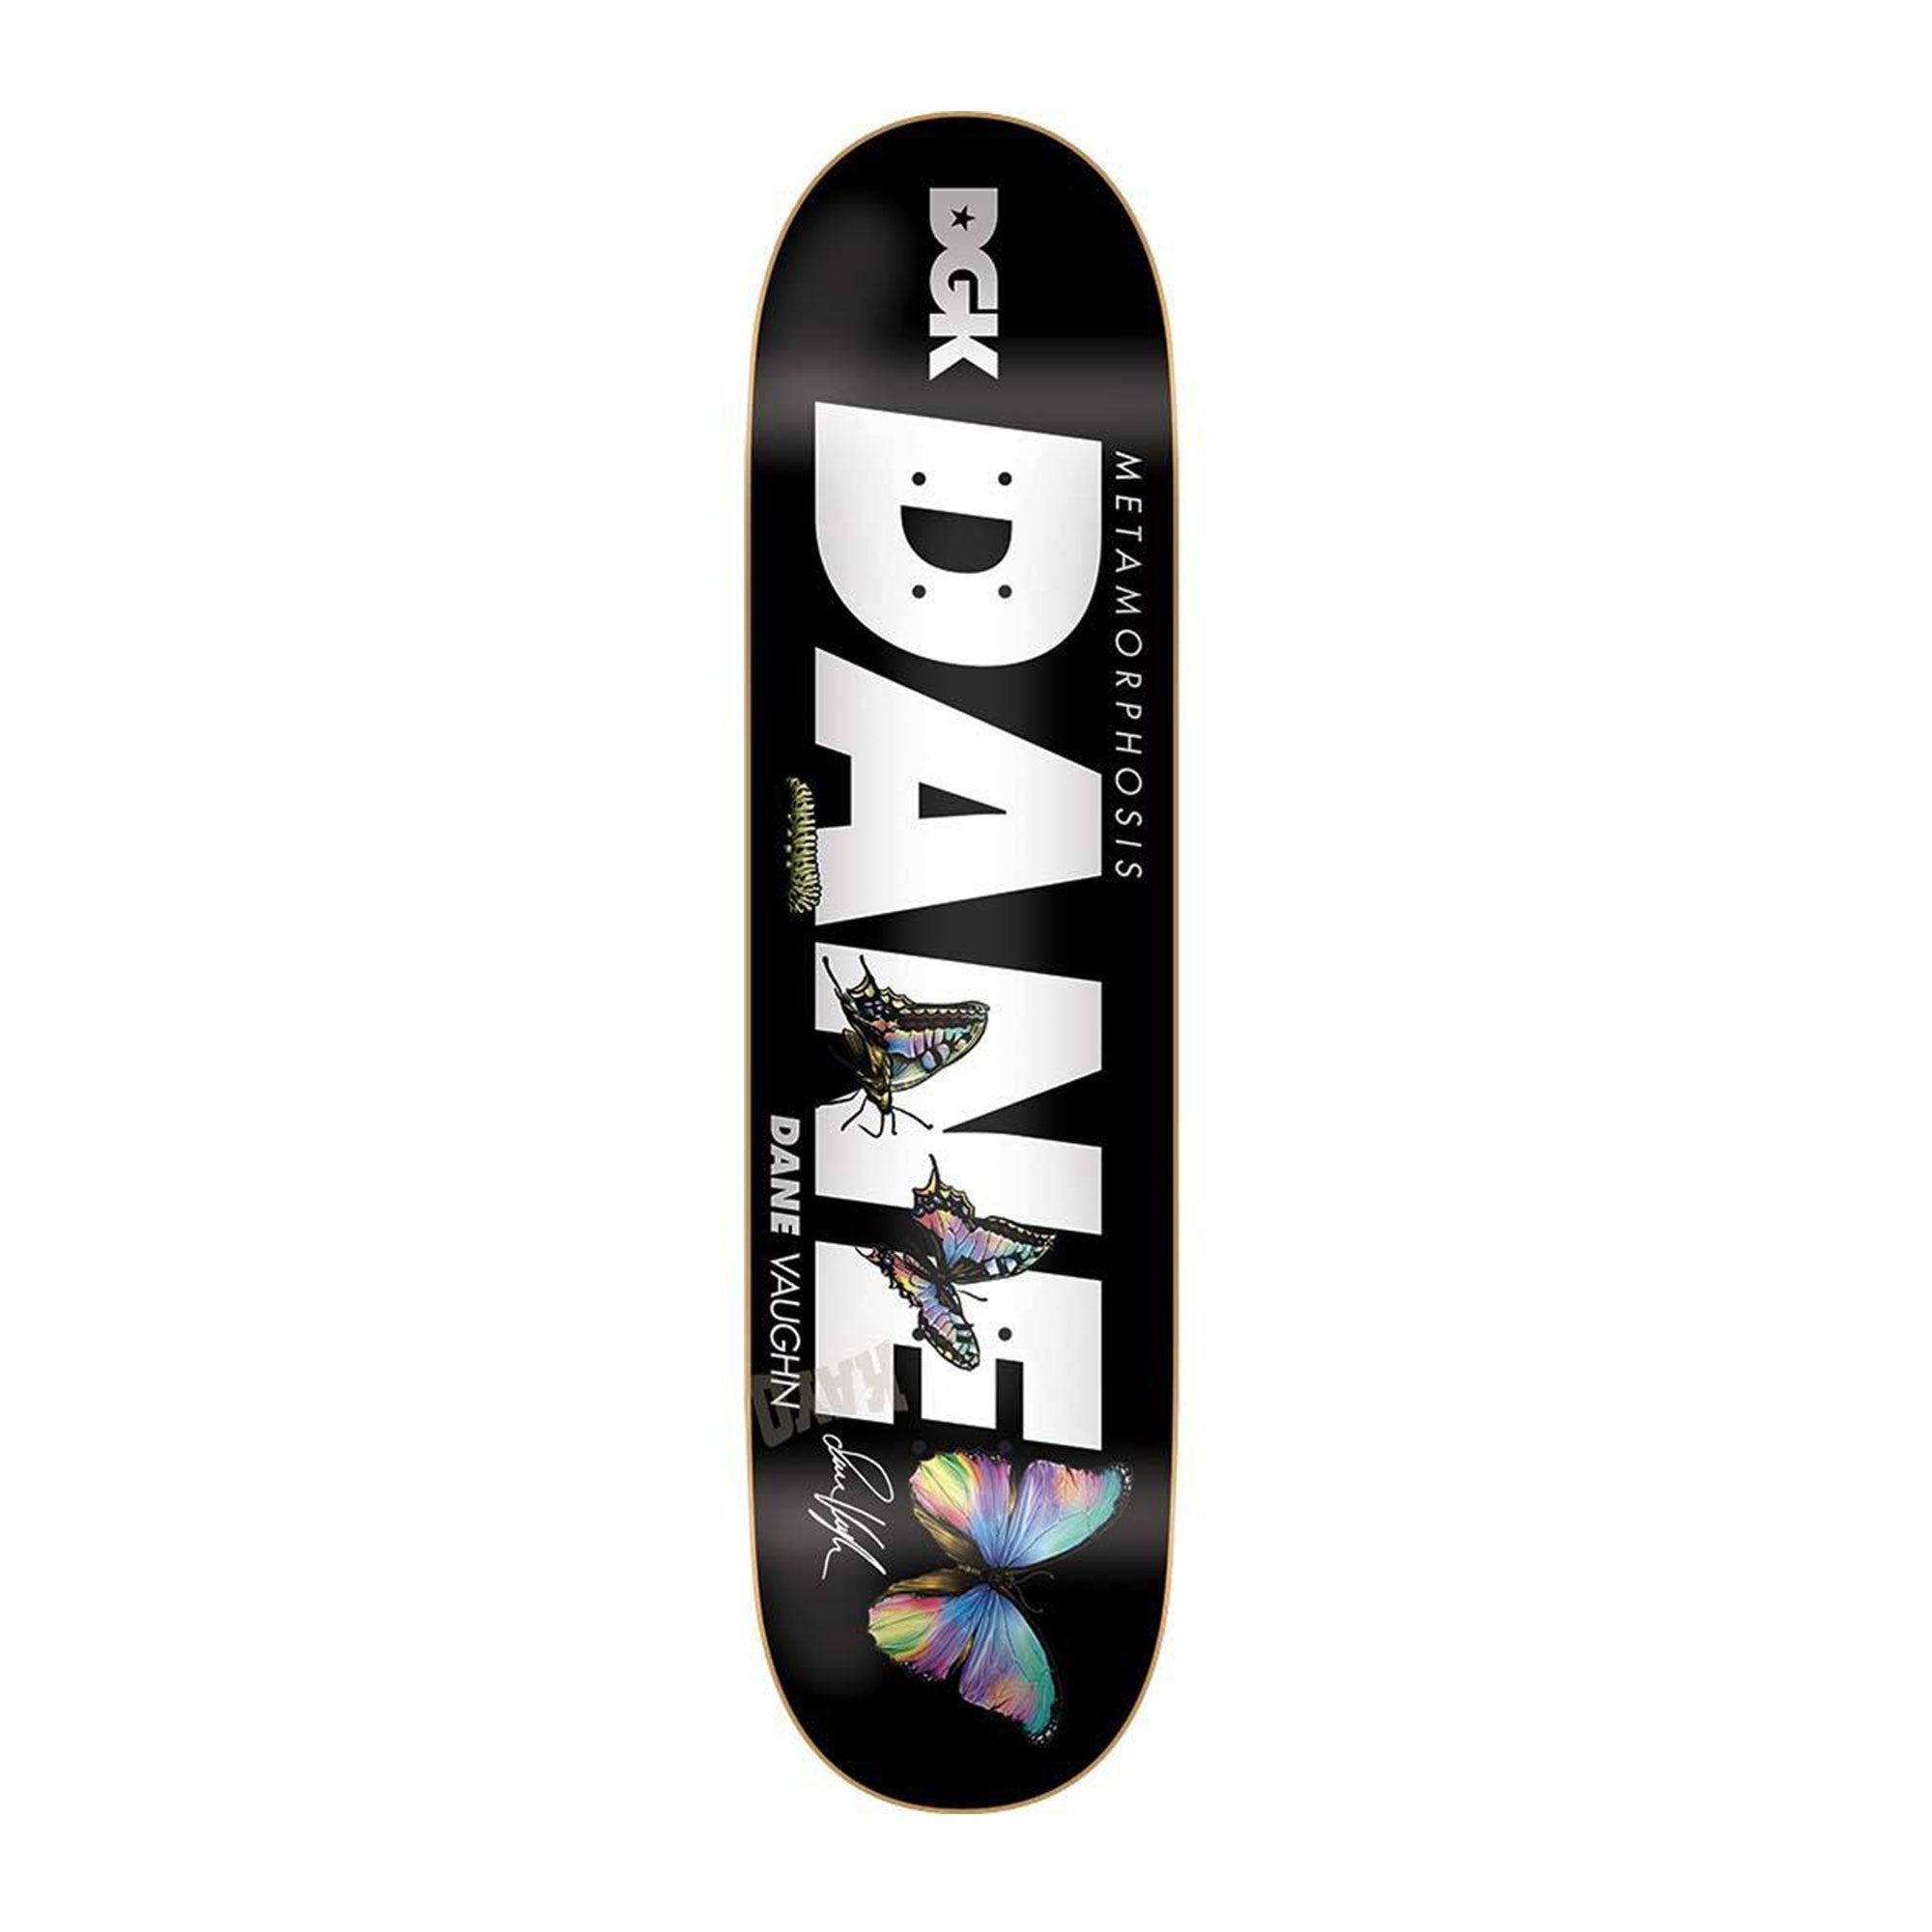 DGK Metamorphis Deck Product Photo #1